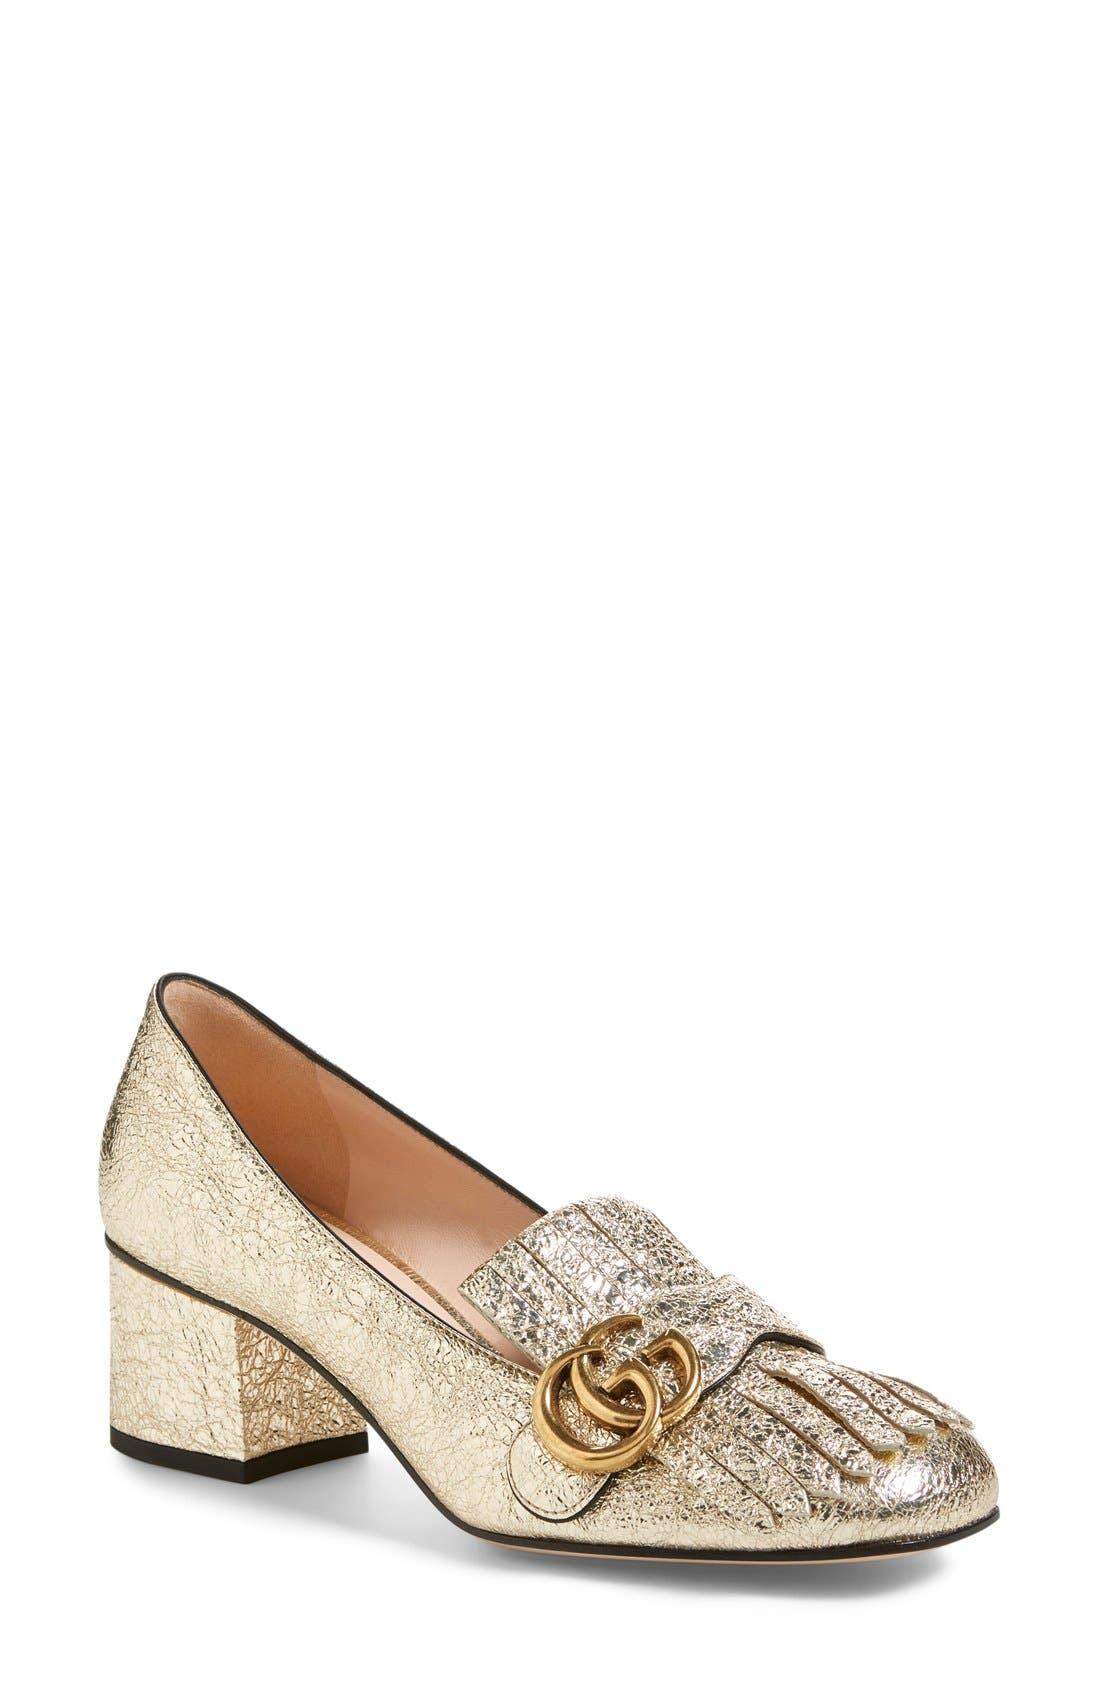 GG Marmont Pump,                             Main thumbnail 1, color,                             GOLD LEATHER